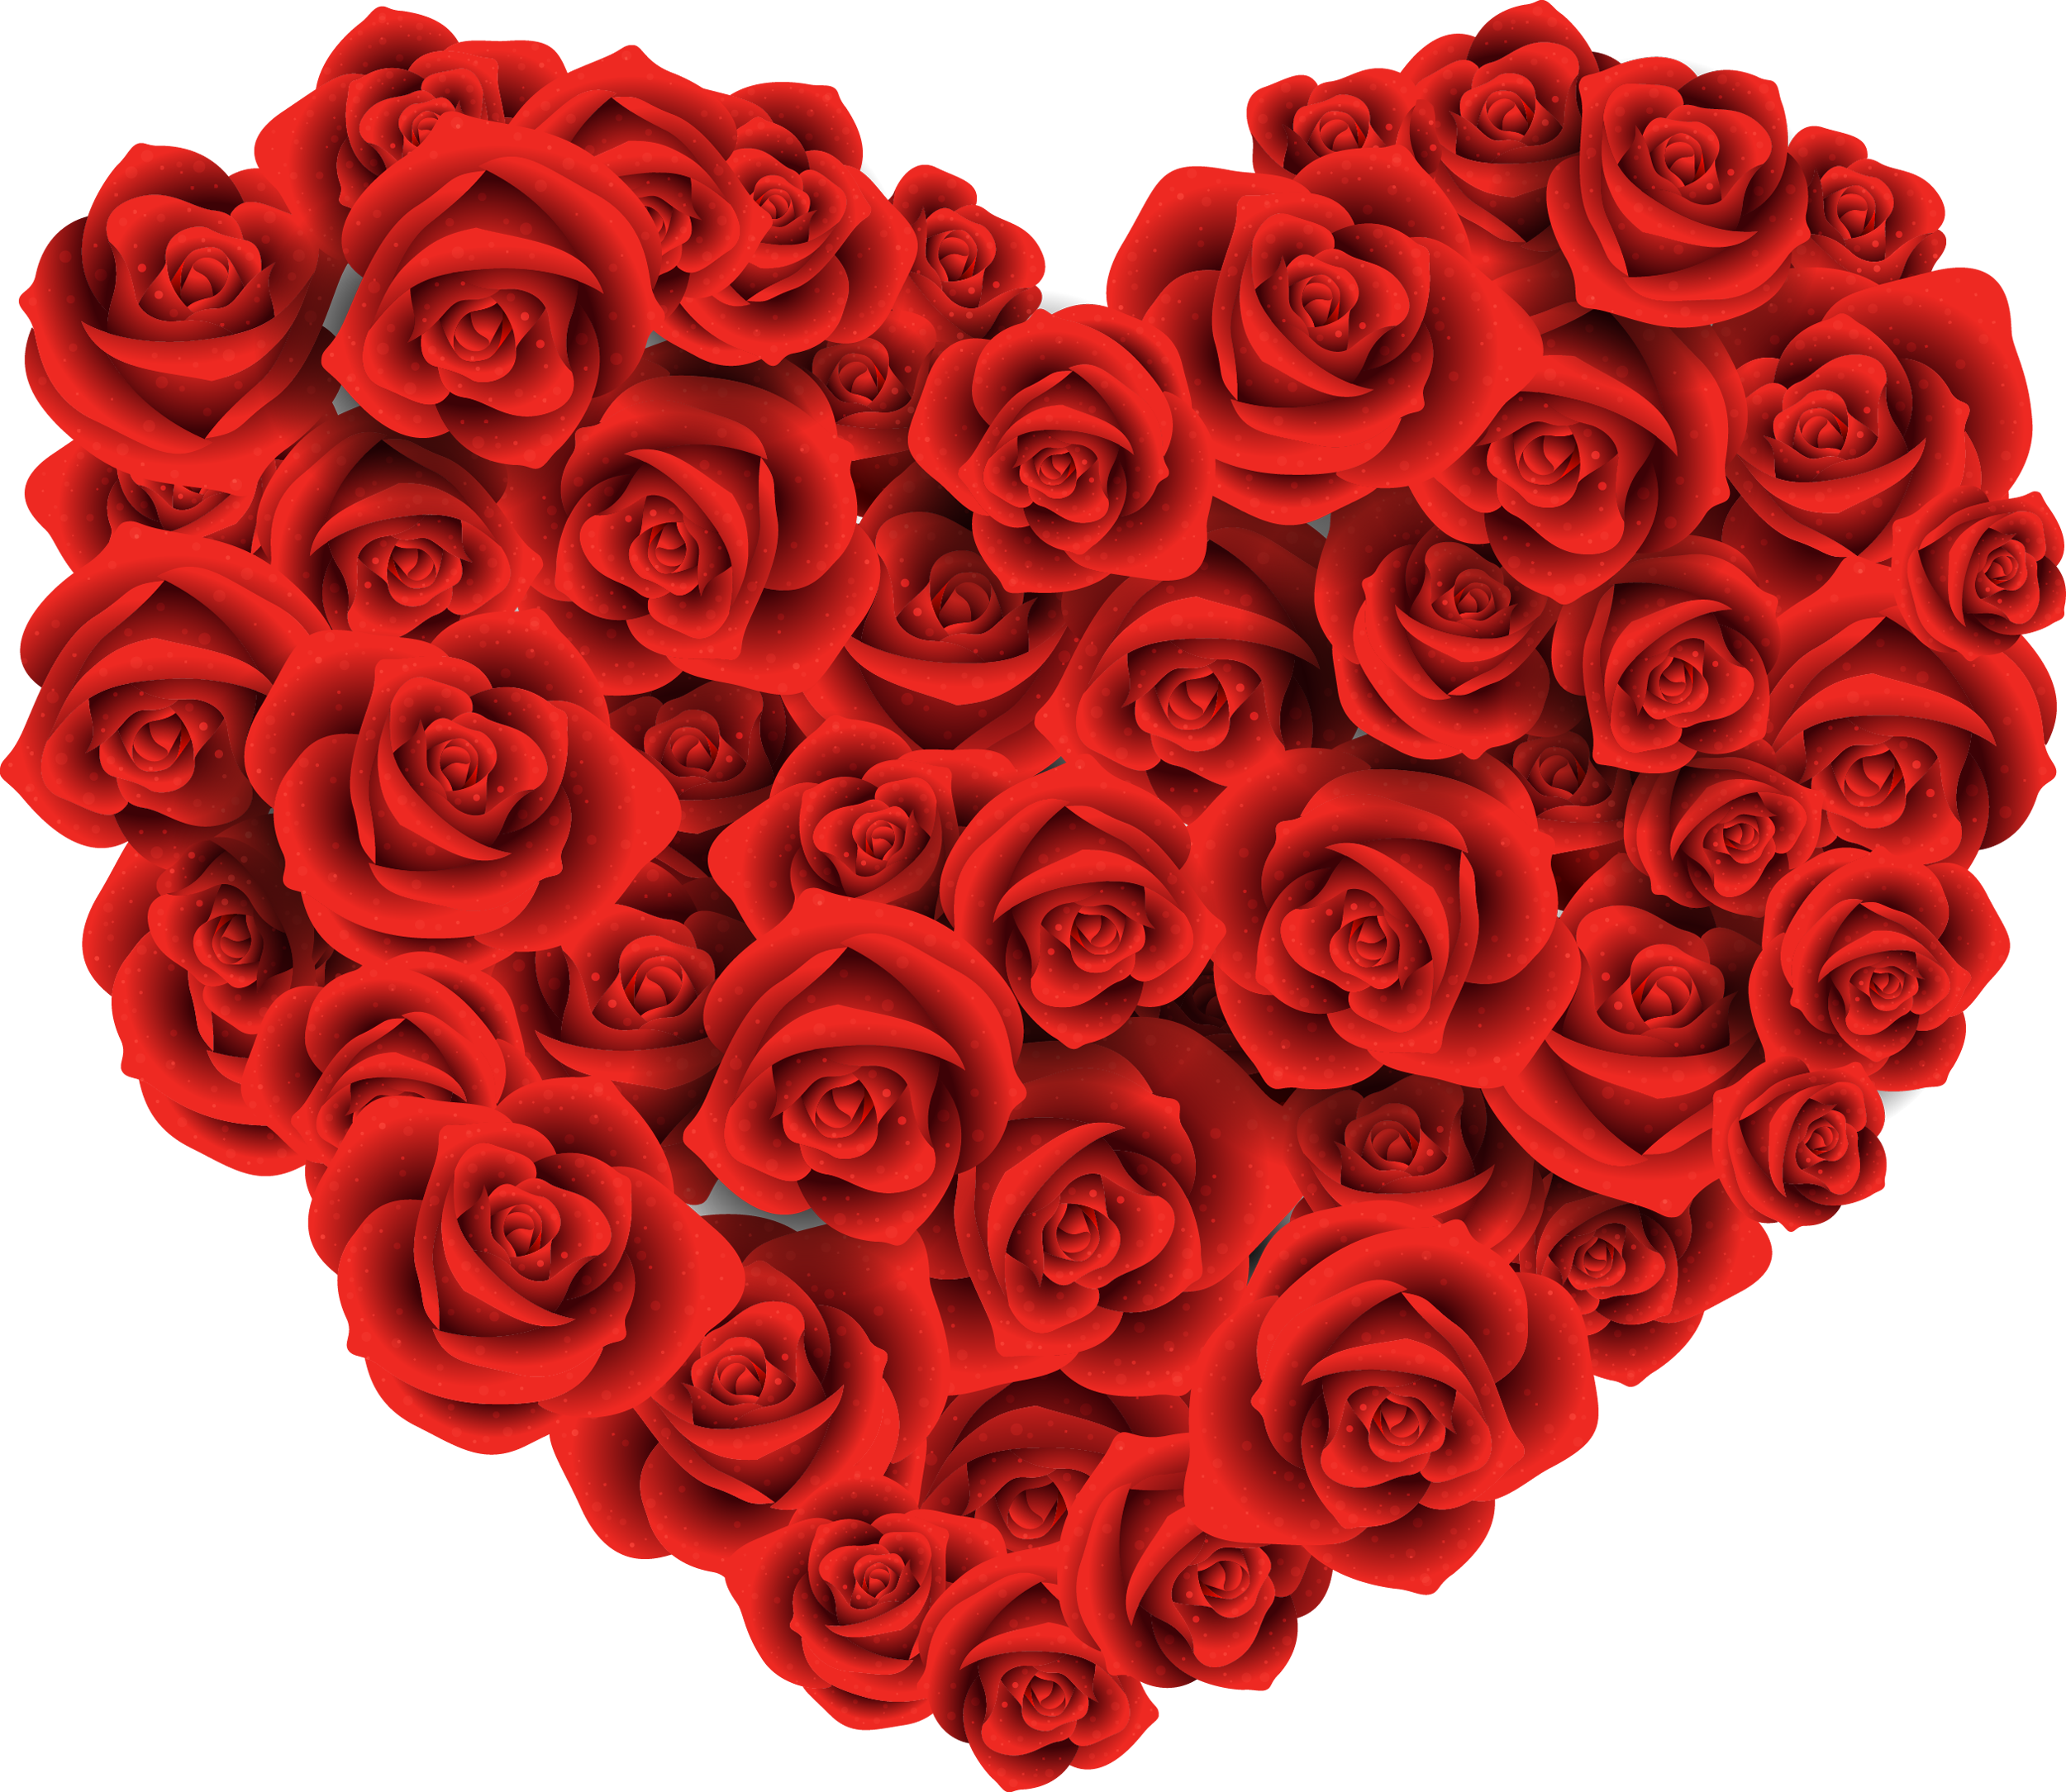 Clipart rose heart. Large of roses png